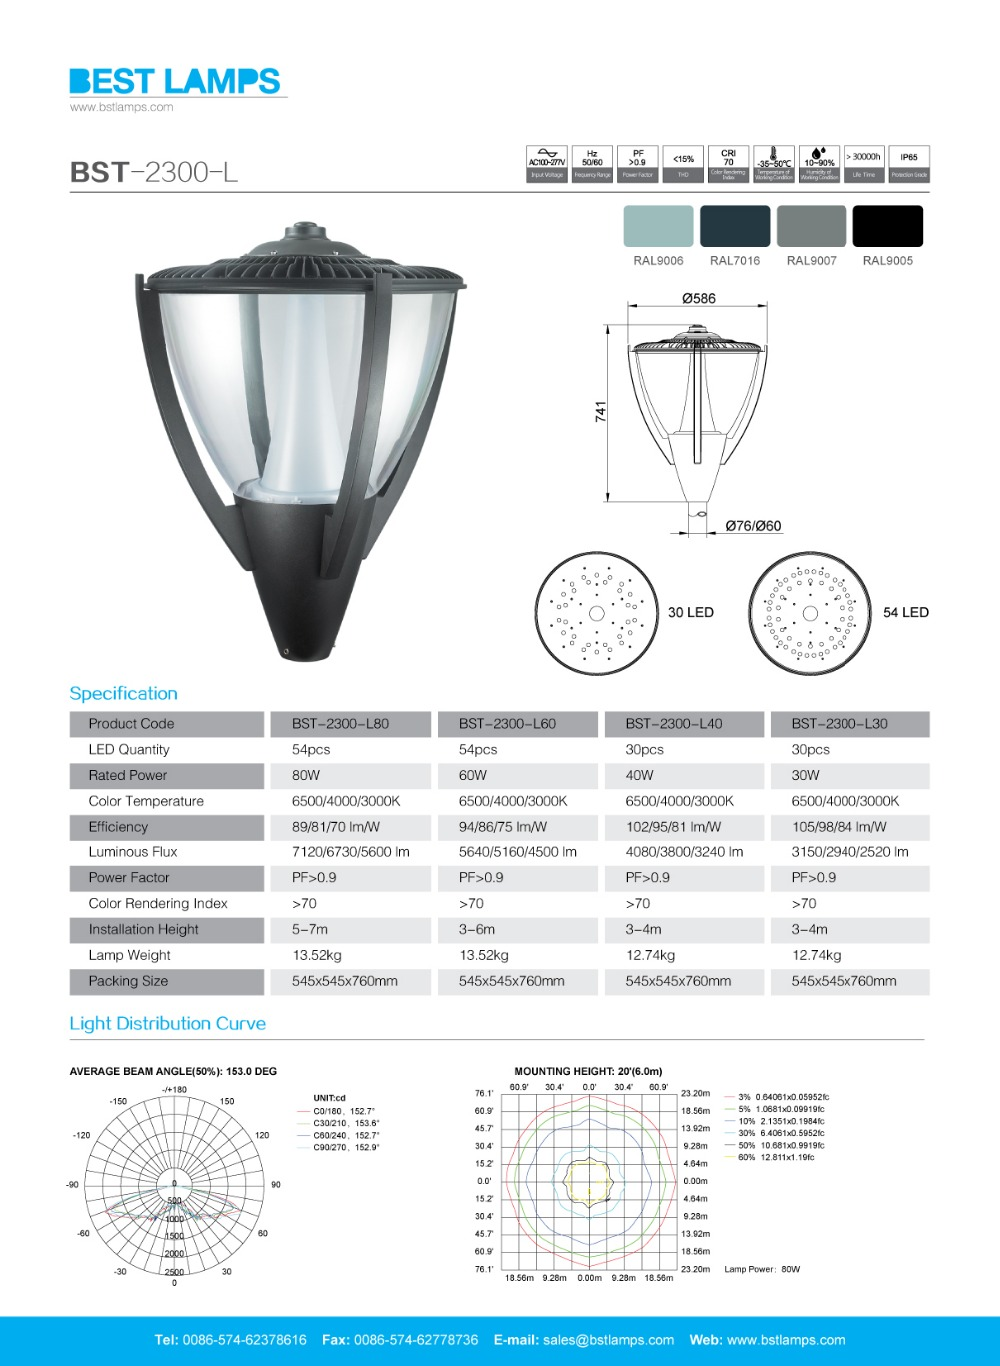 BST-2300-L led high power lamp led outdoor lighting